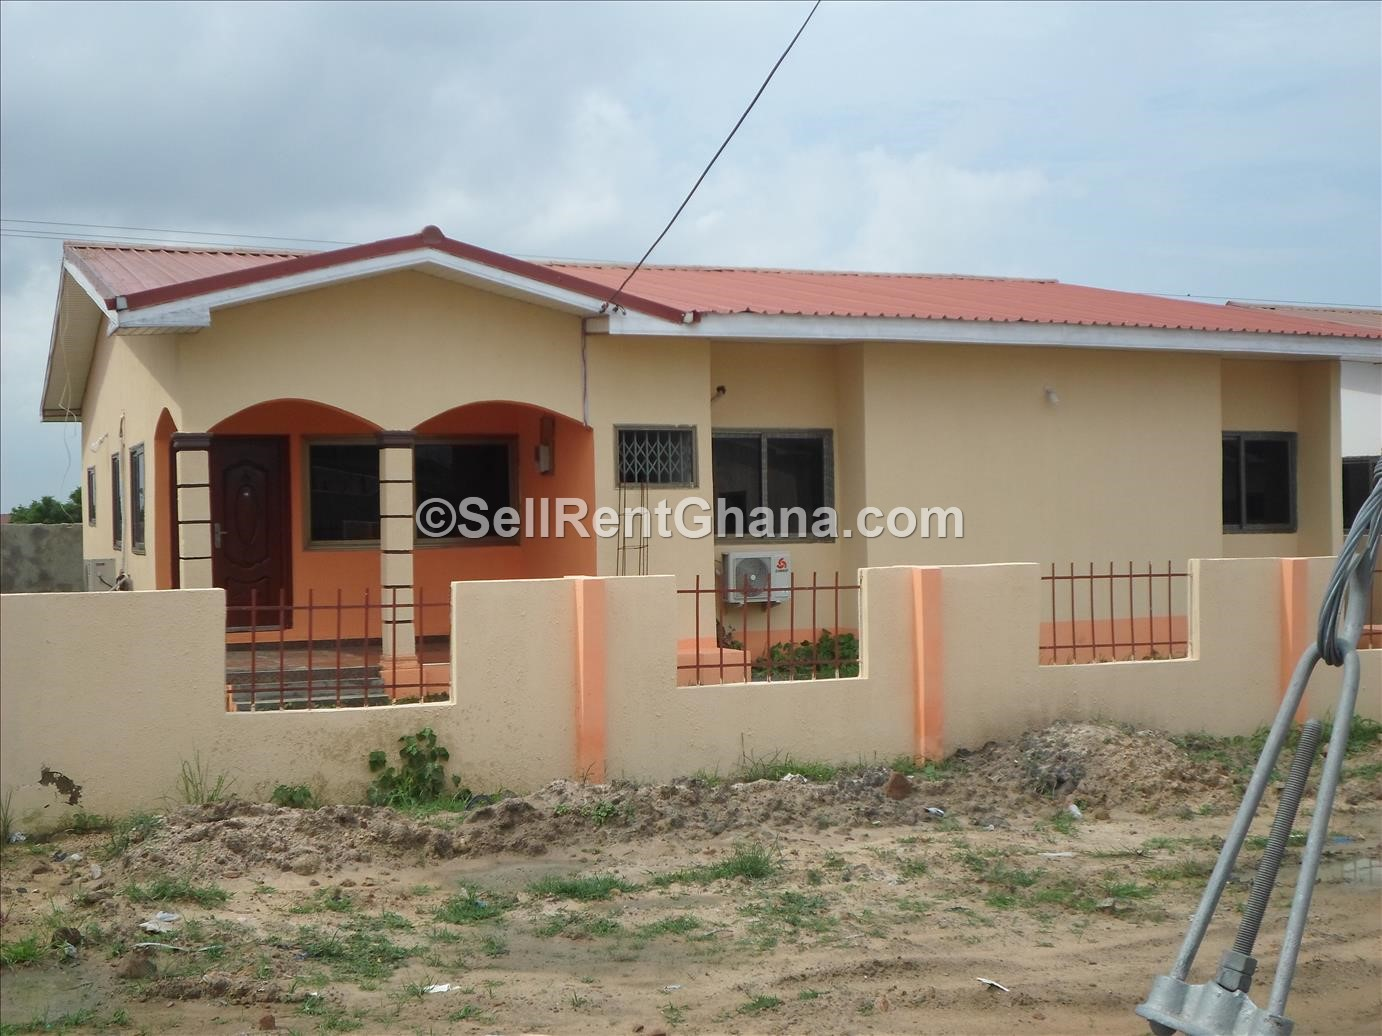 2 Bedroom Detached House Tema Comm 25 Sellrent Ghana